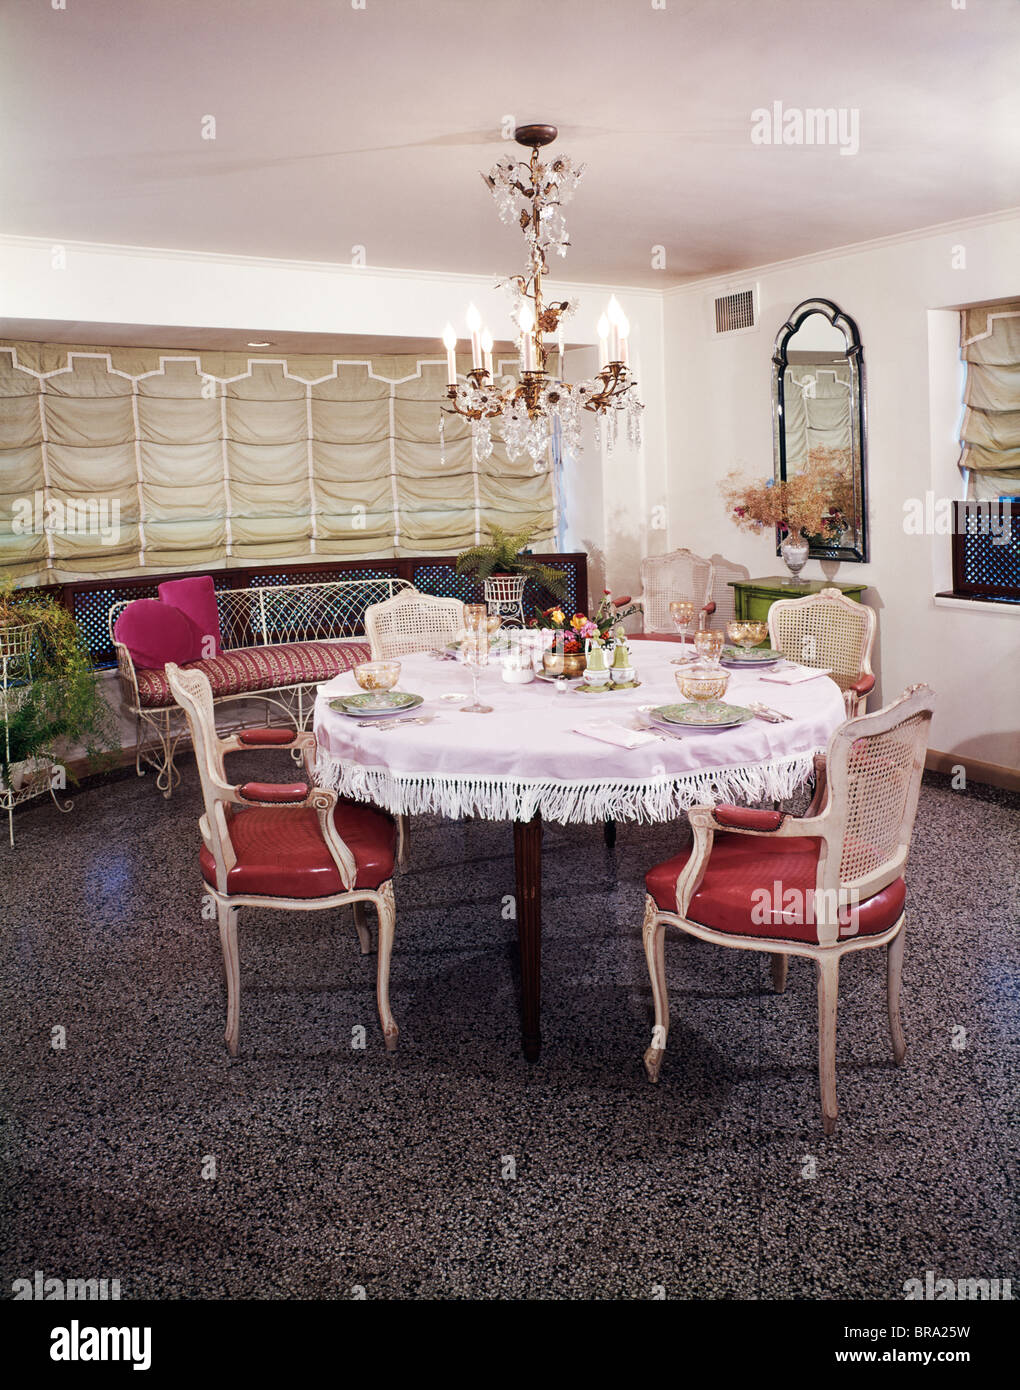 Exceptional 1960s DINING ROOM TABLE CHAIRS PLACES SET FOR FOUR FRINGED TABLECLOTH  CHANDELIER AUSTRIAN SHADE WINDOW TREATMENT